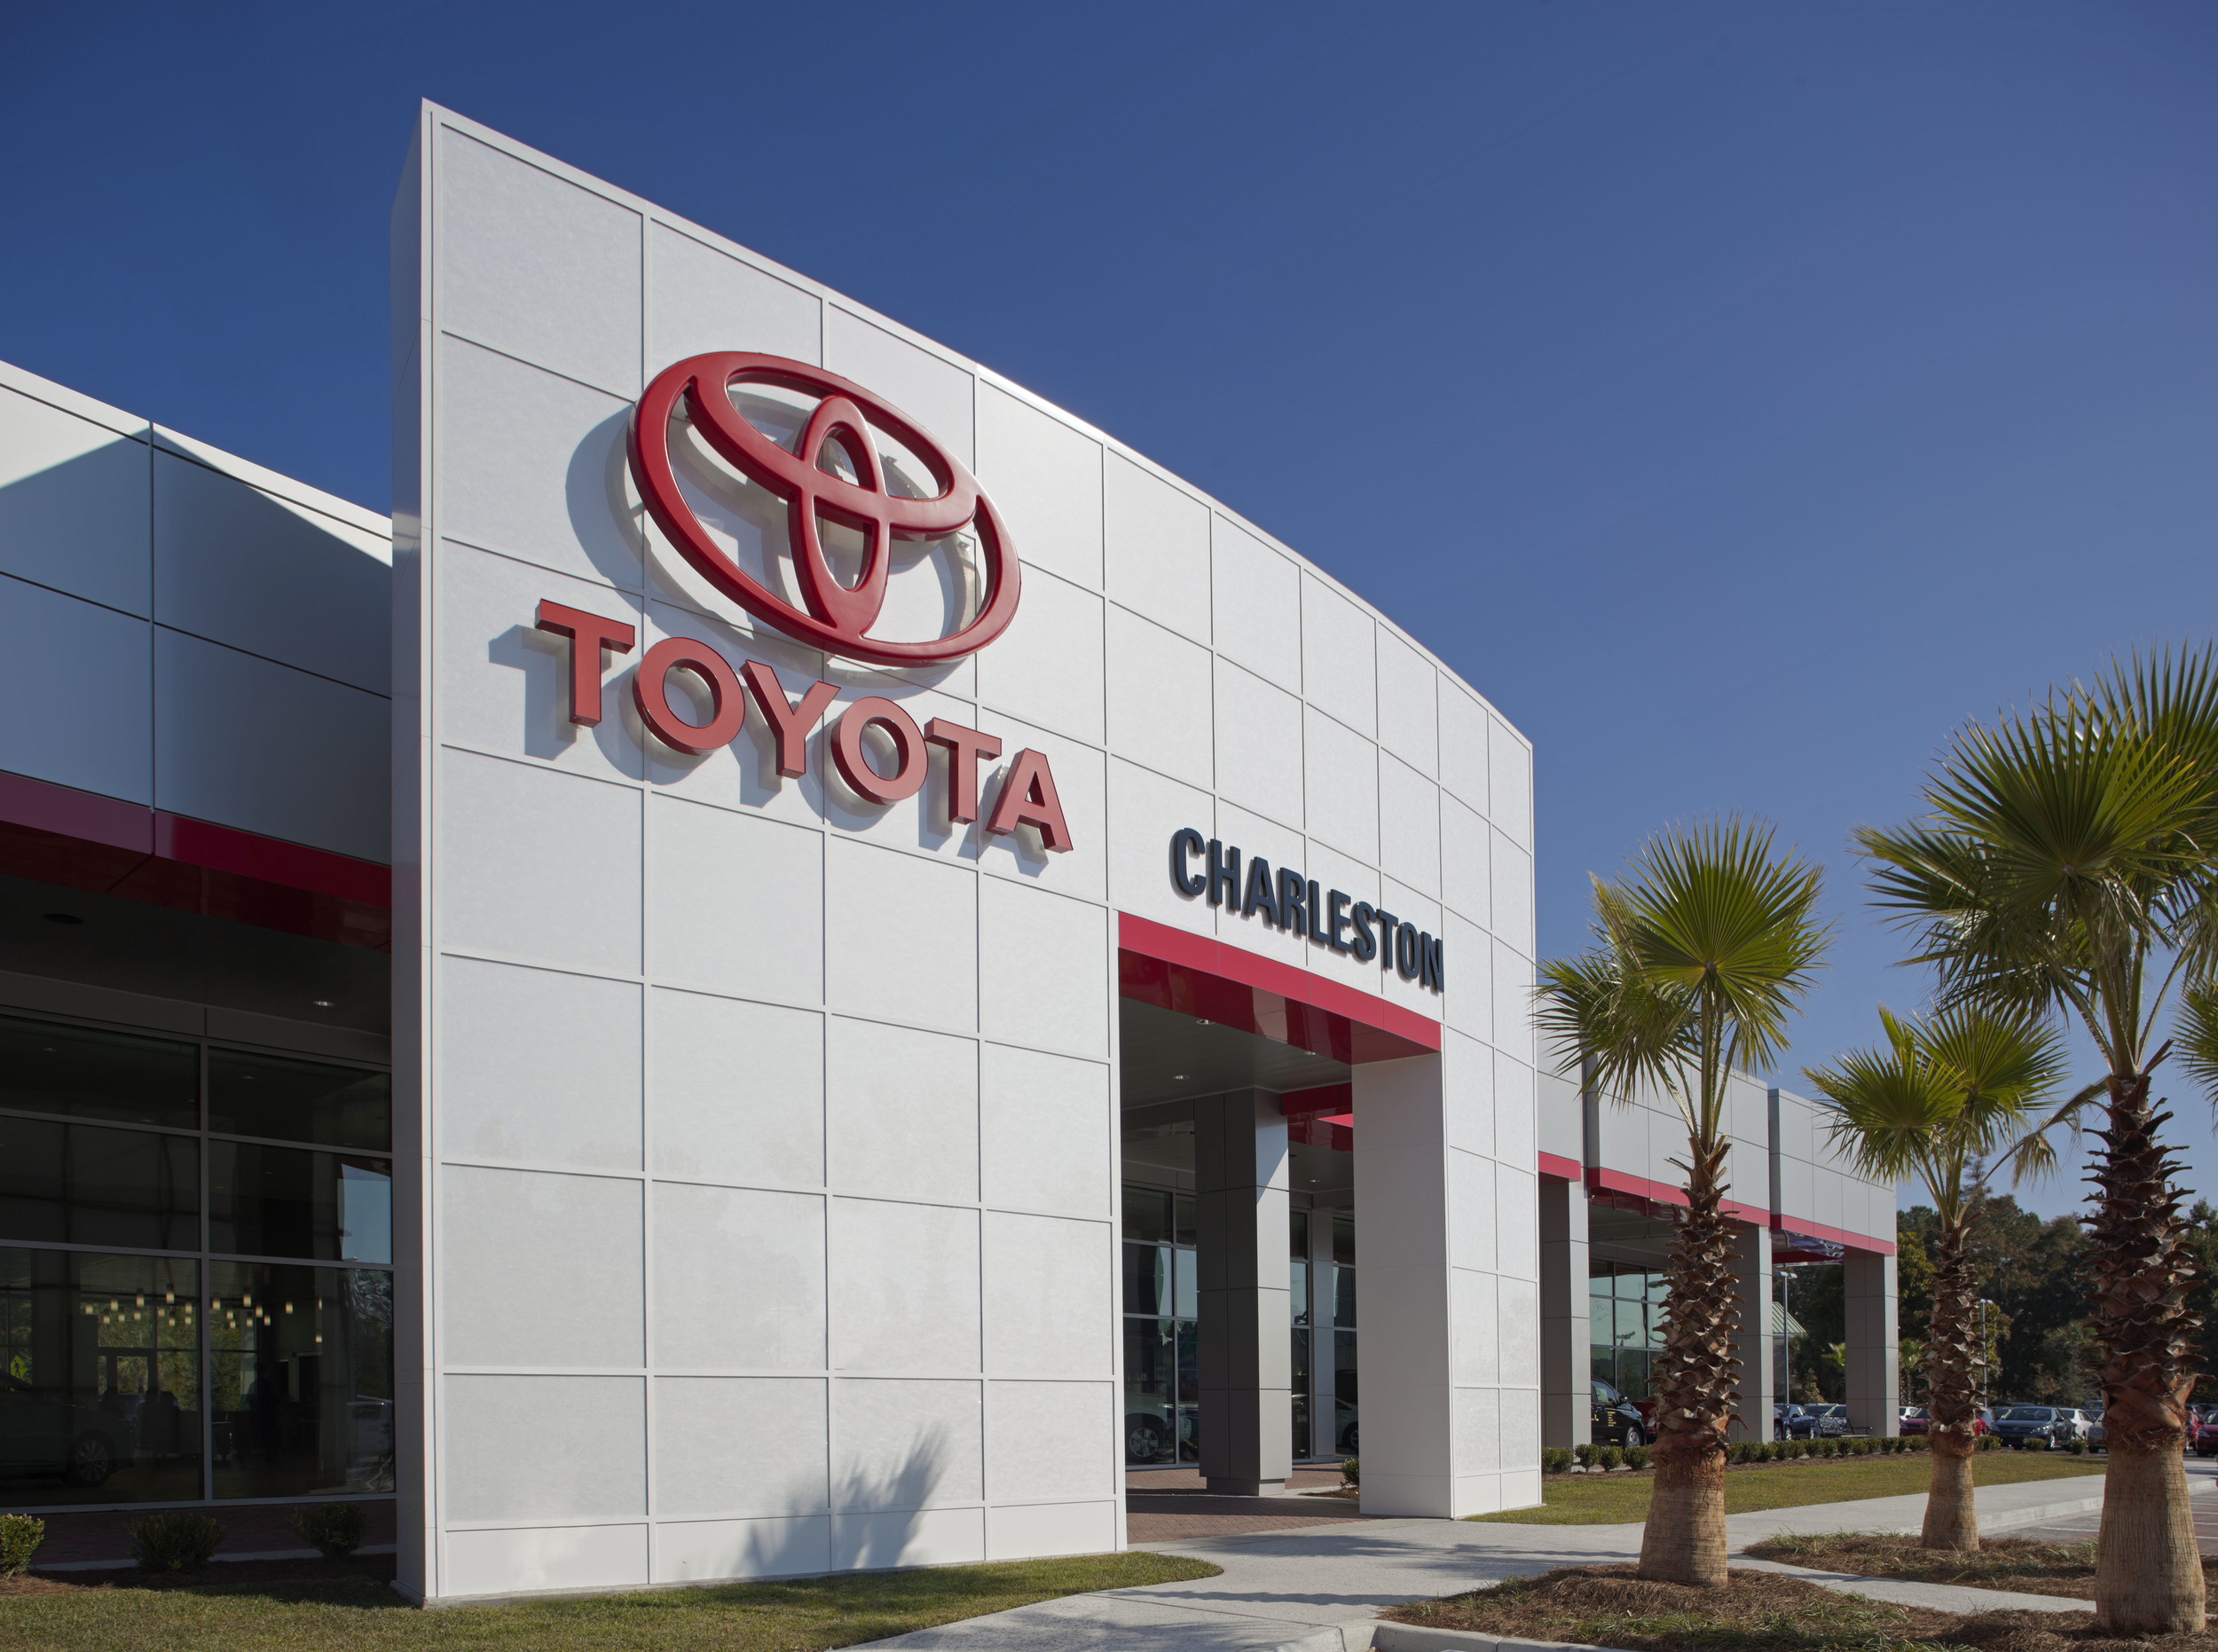 toyota of charleston final med res 9.jpg